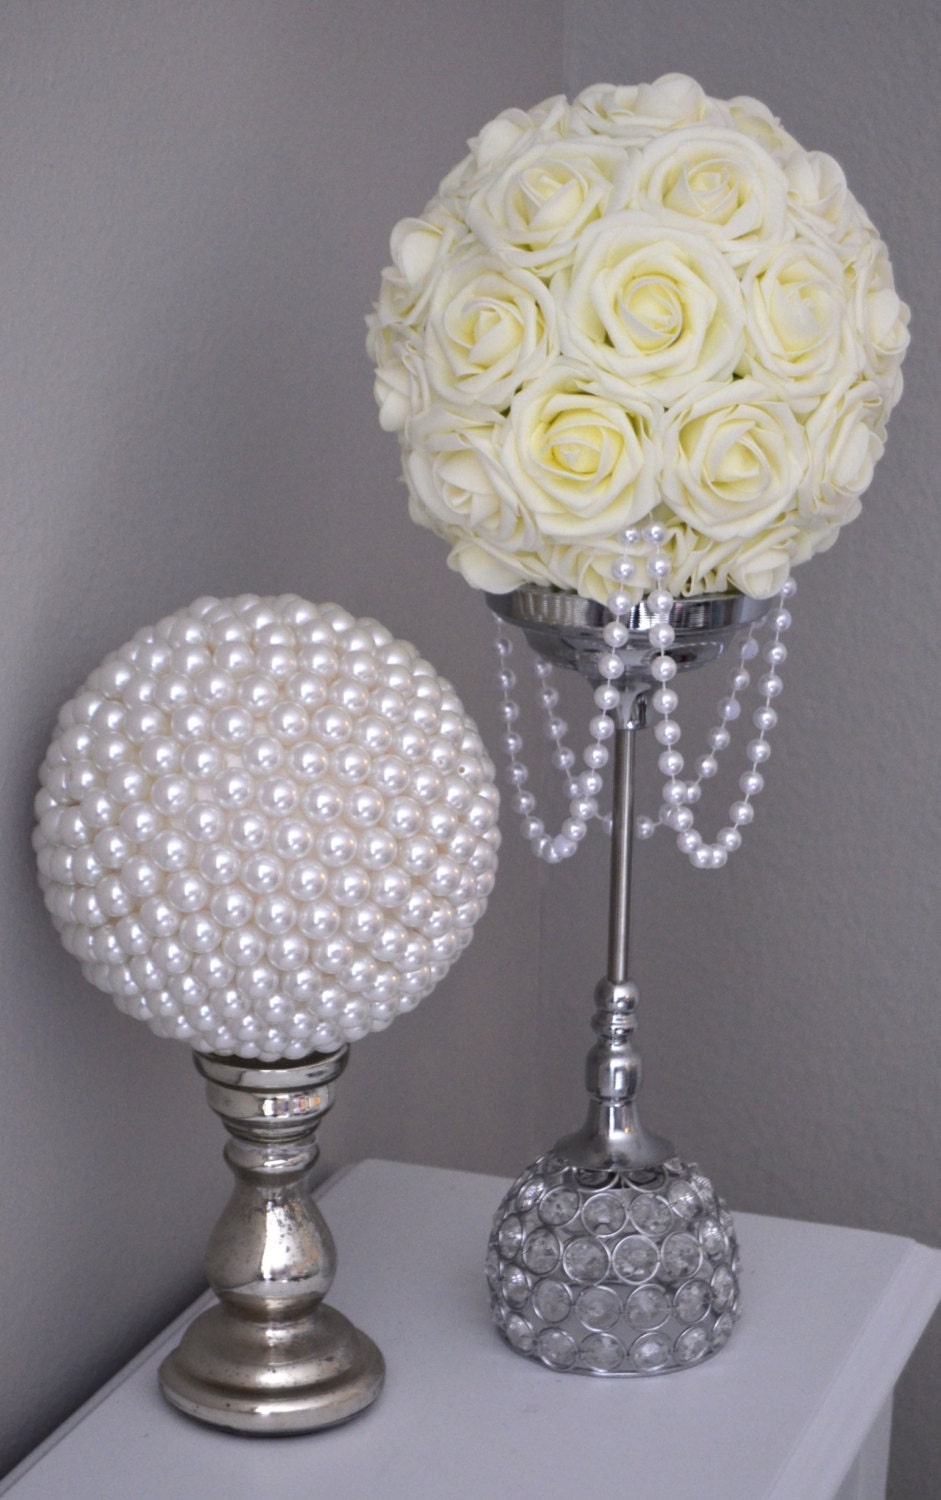 pearl wedding decor ivory flower with draping pearls wedding decor bridal 6423